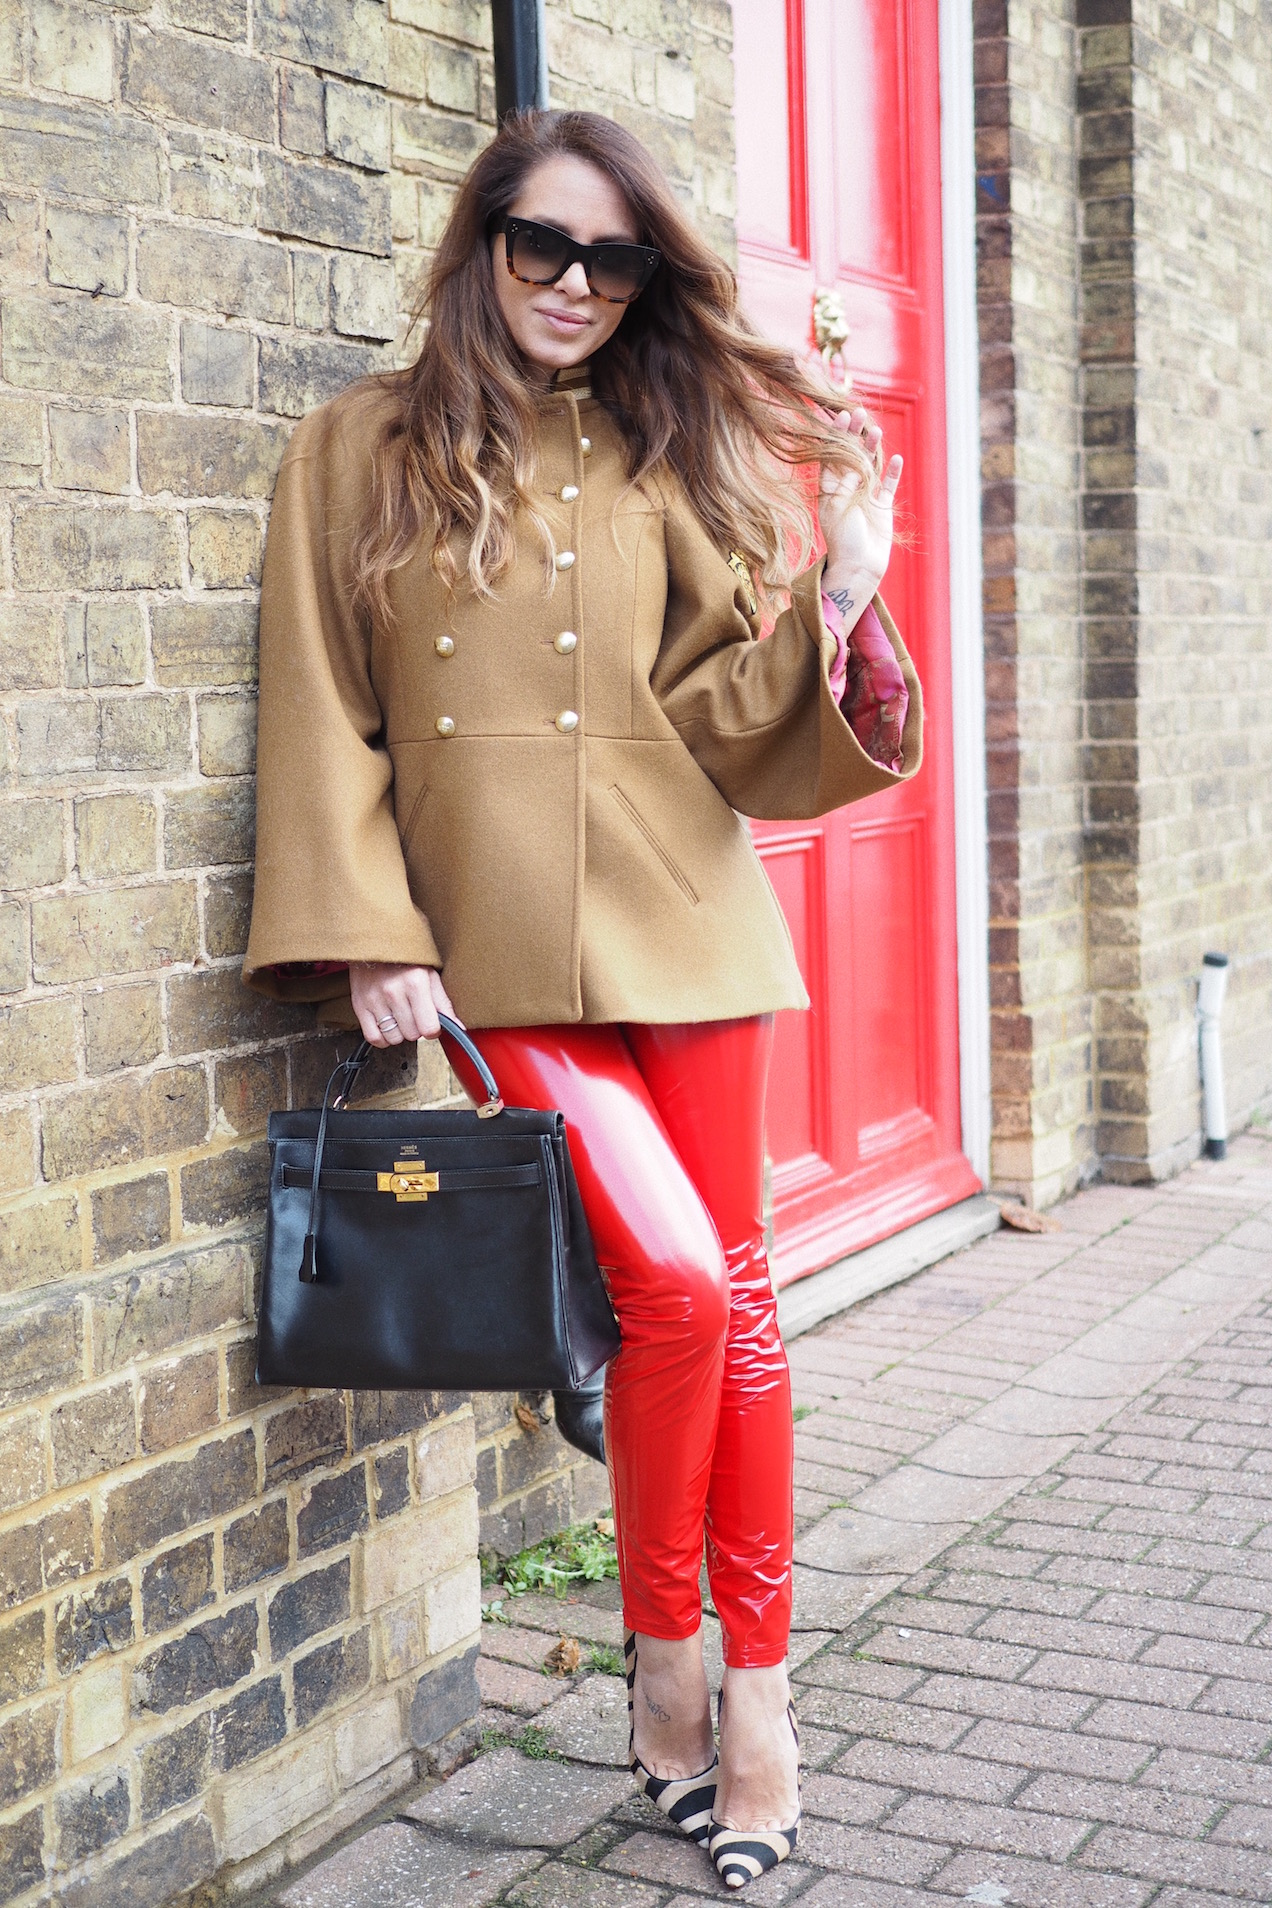 london street style uk fashion bloggers